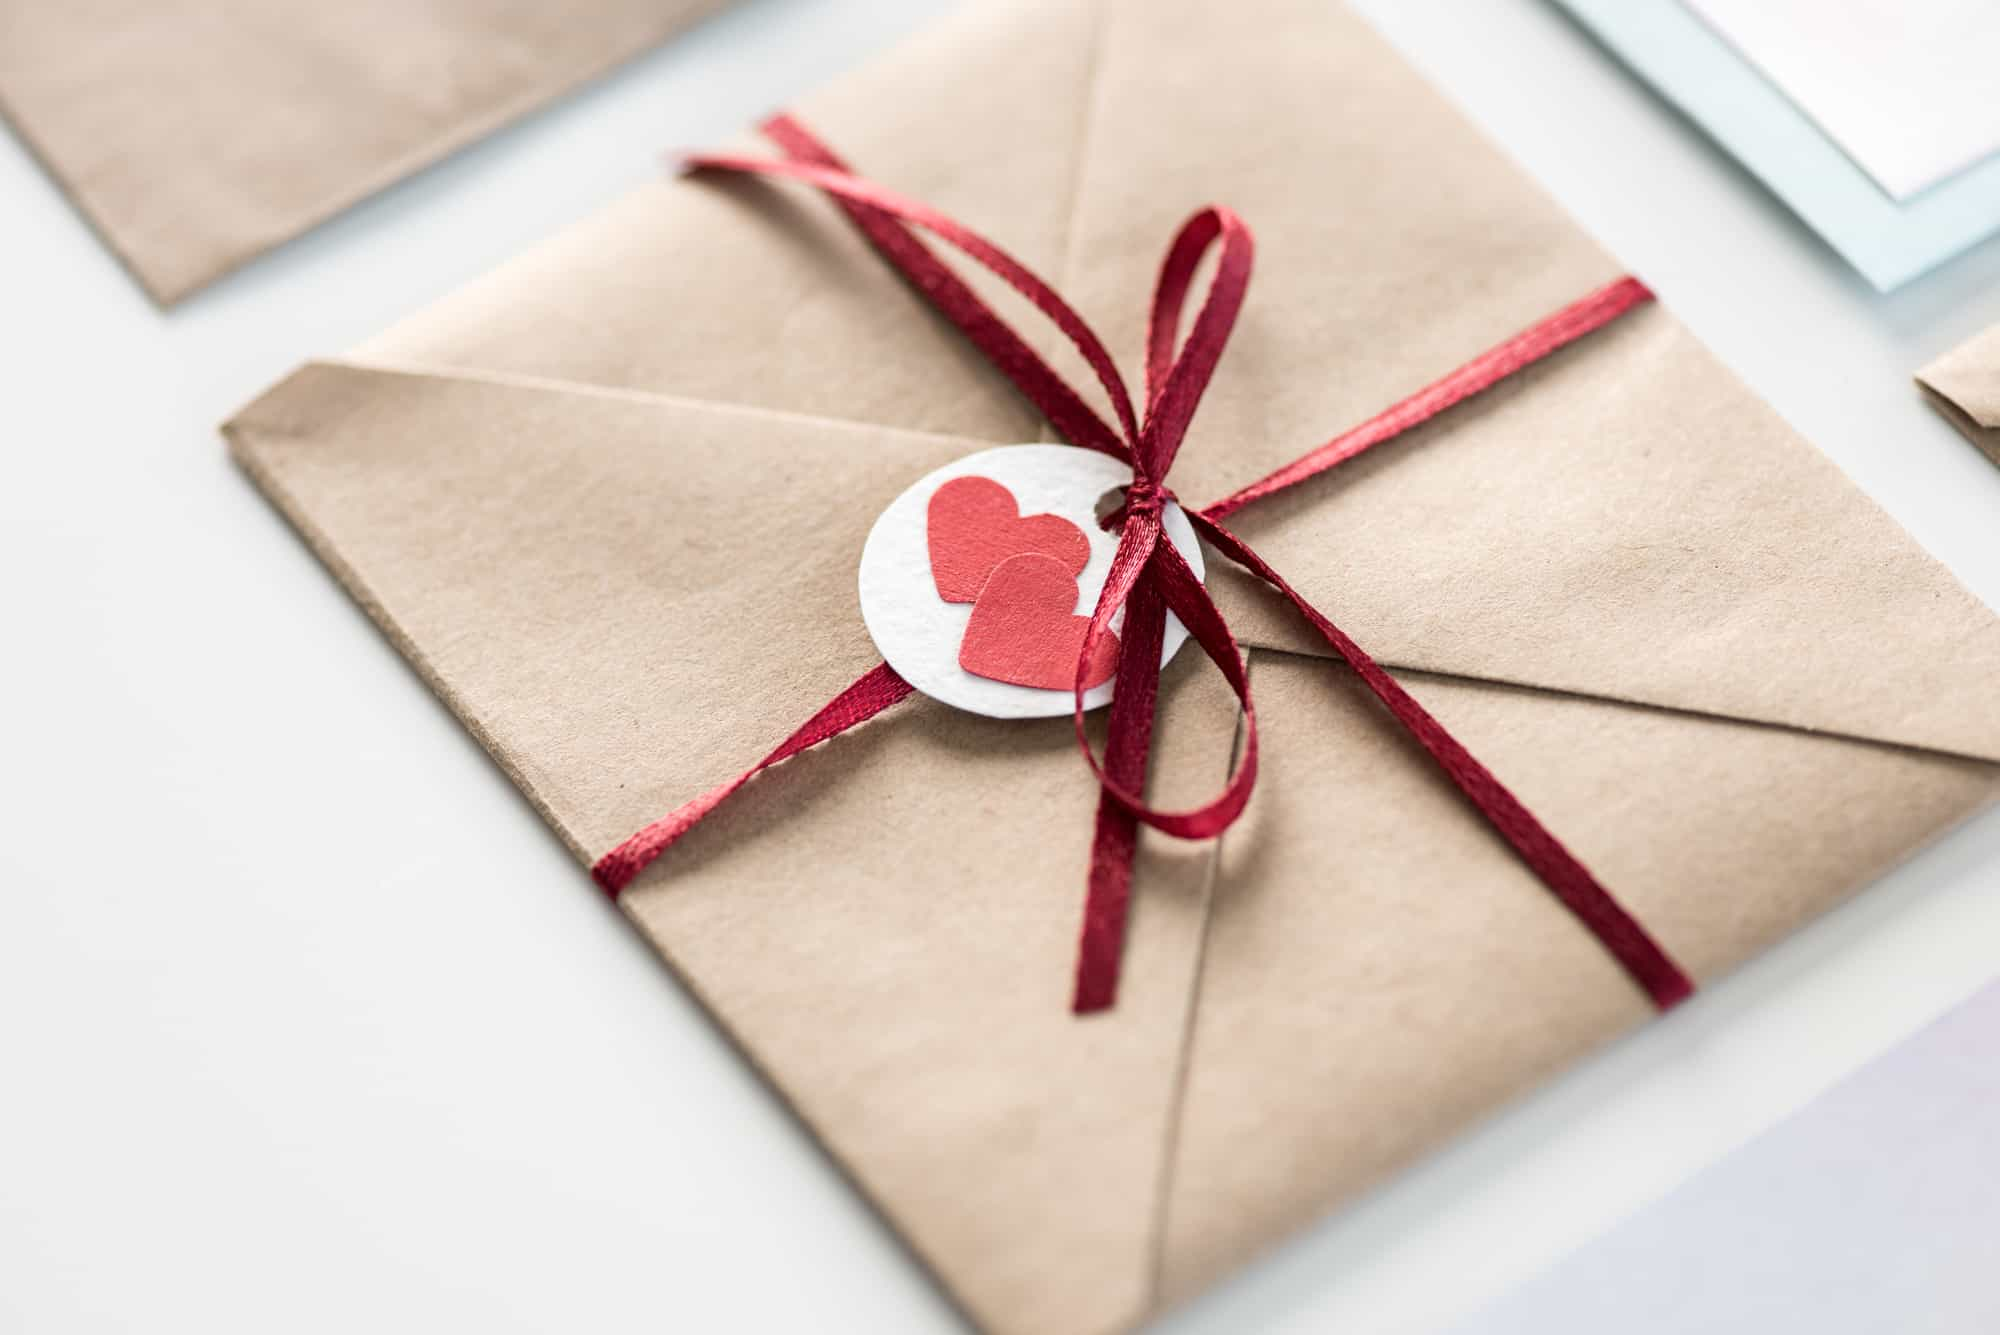 Envelope with tag with hearts